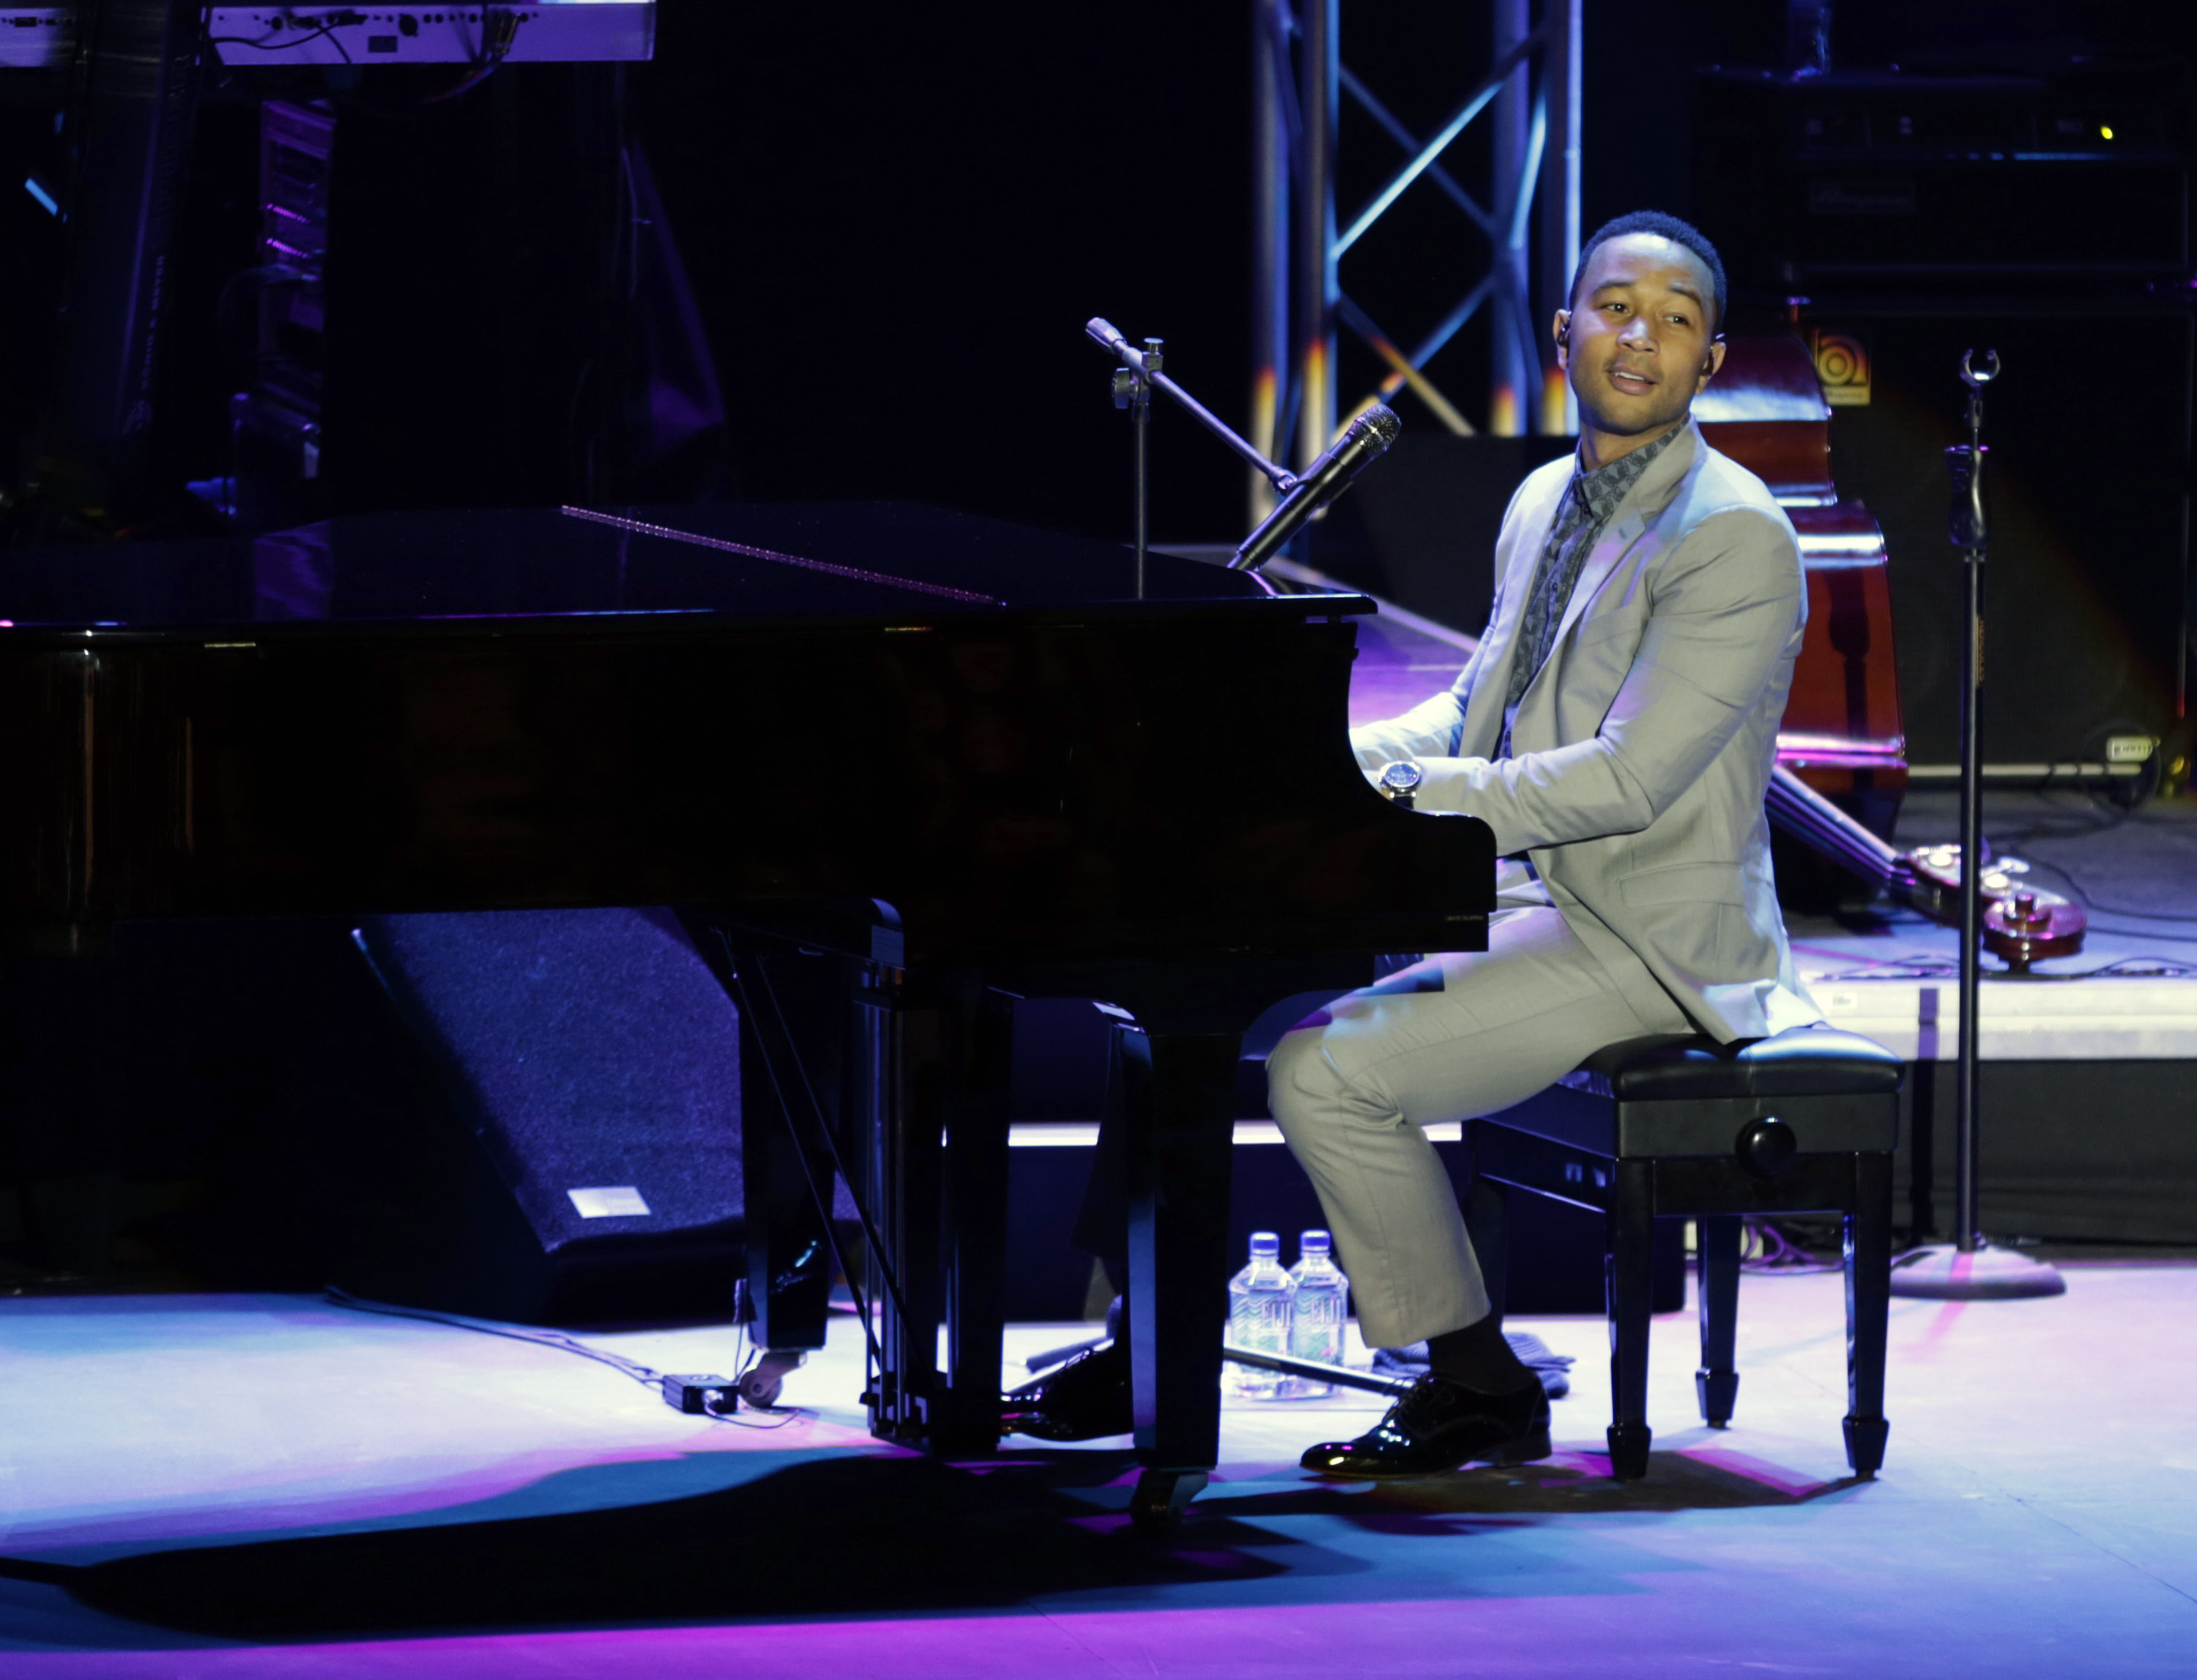 Singer John Legend talks about justice at Bahrain concert